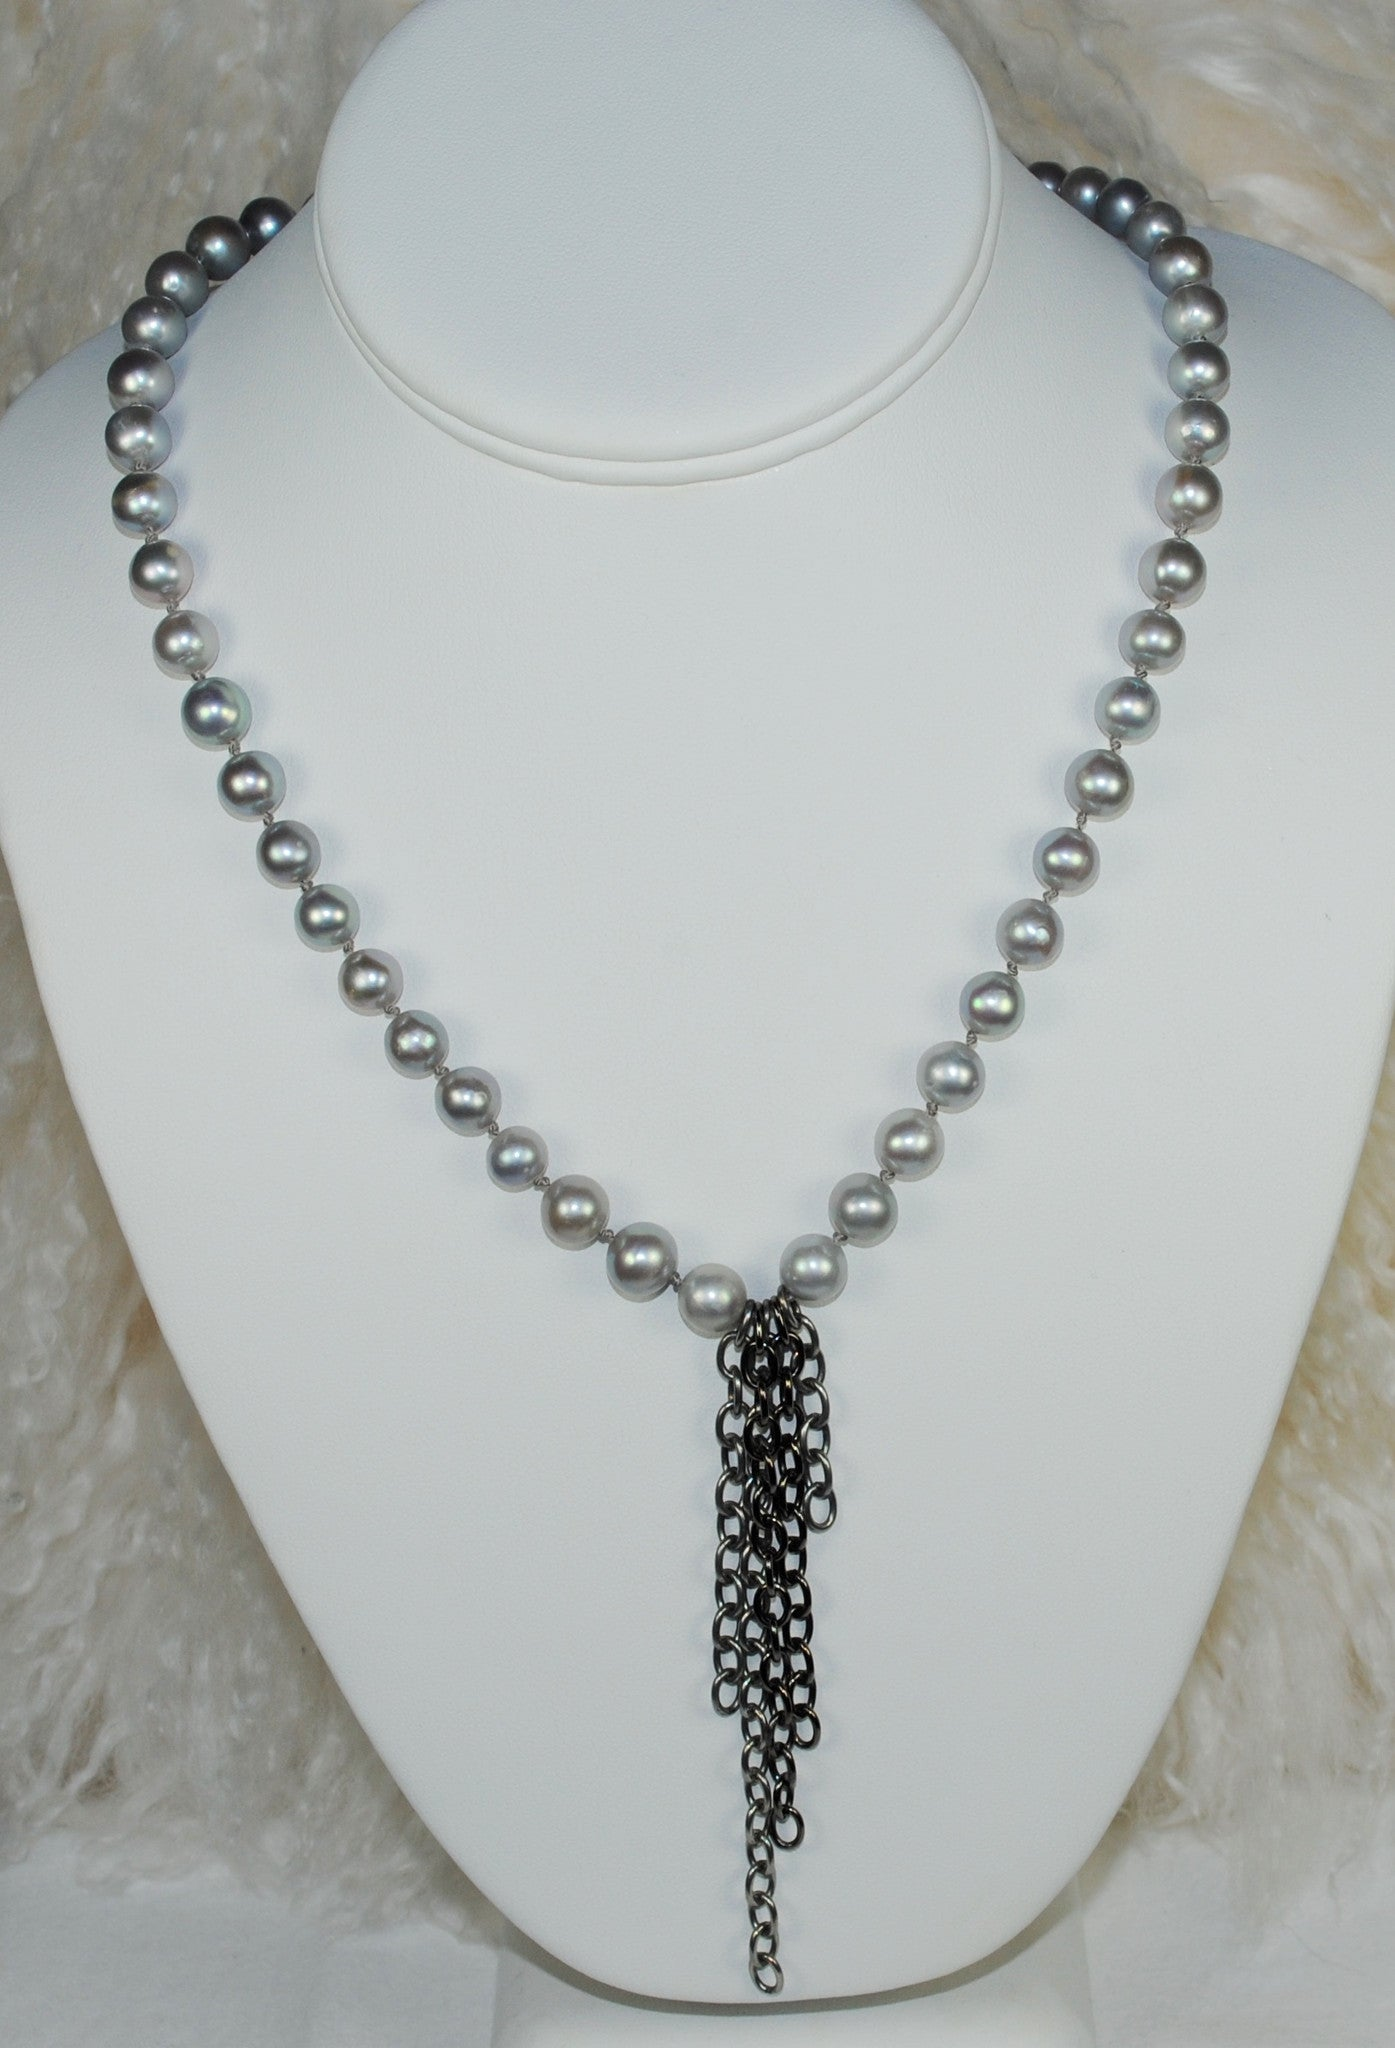 Pearls & Chains Necklace